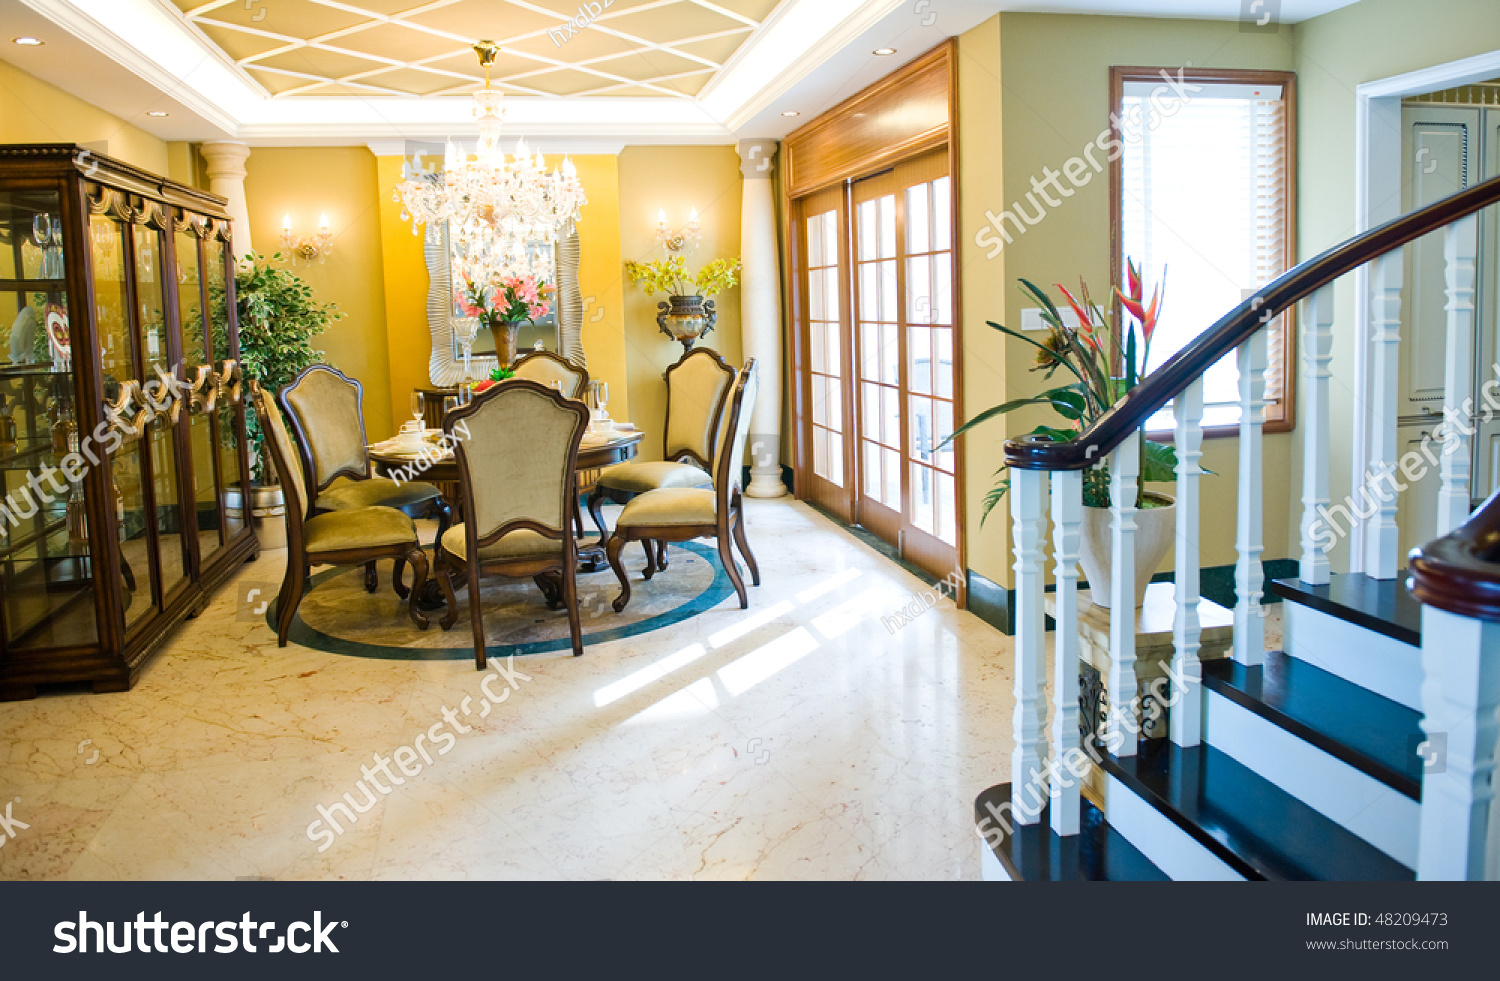 well decorated formal dining room in a luxury home stock sleigh bells ring houses bling gallery of well decorated